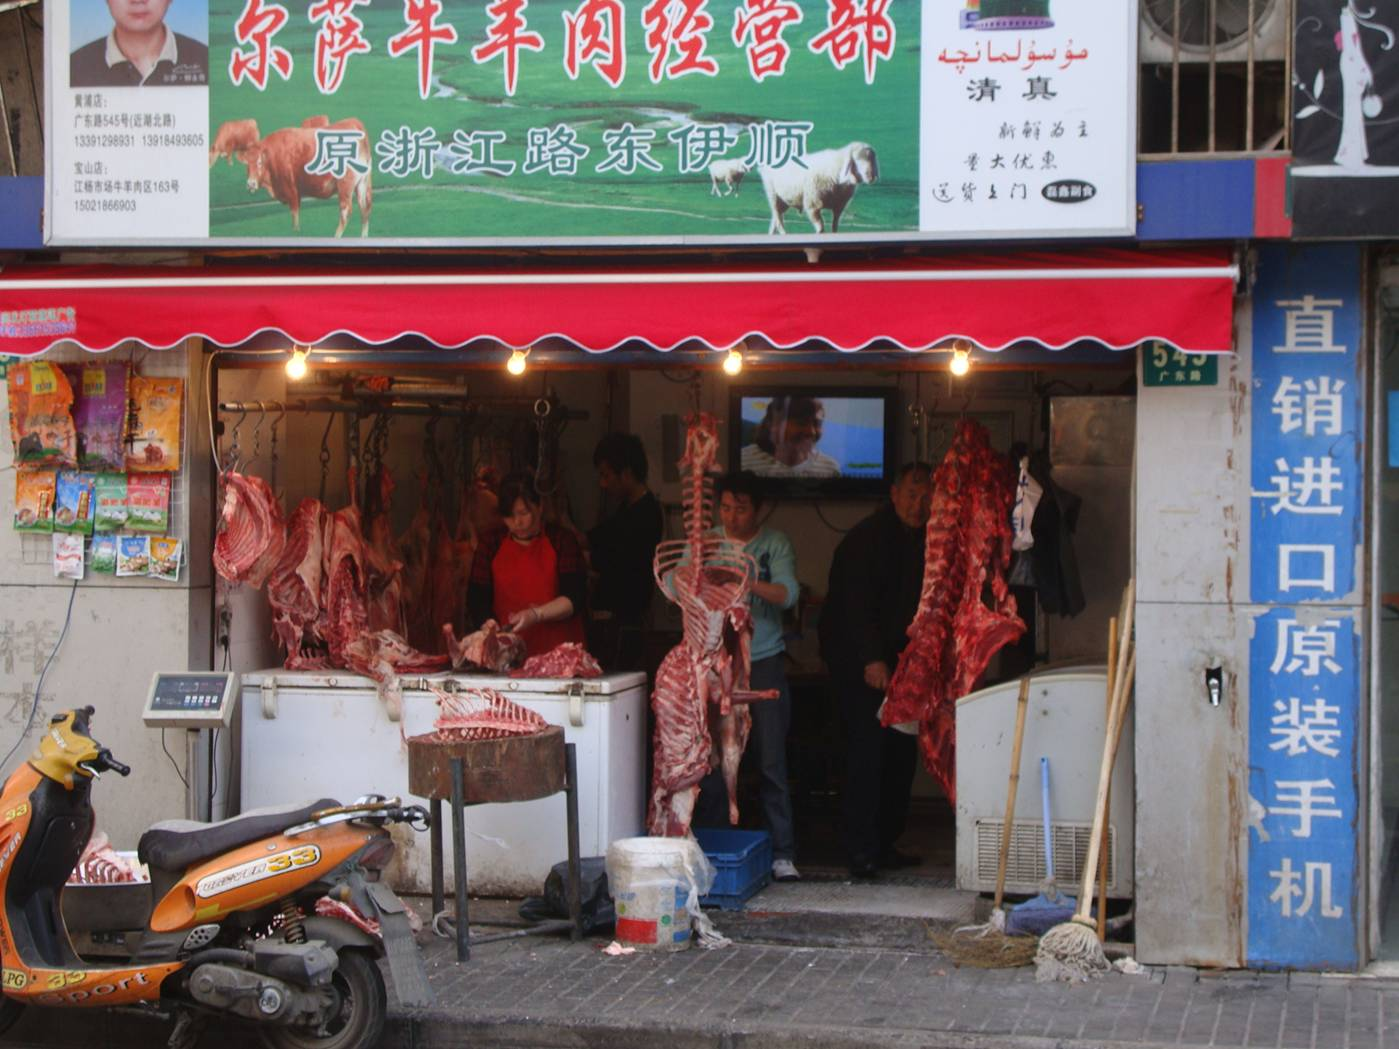 We're pretty sure it was a sheep. Muslim meat market in Shanghai, China.